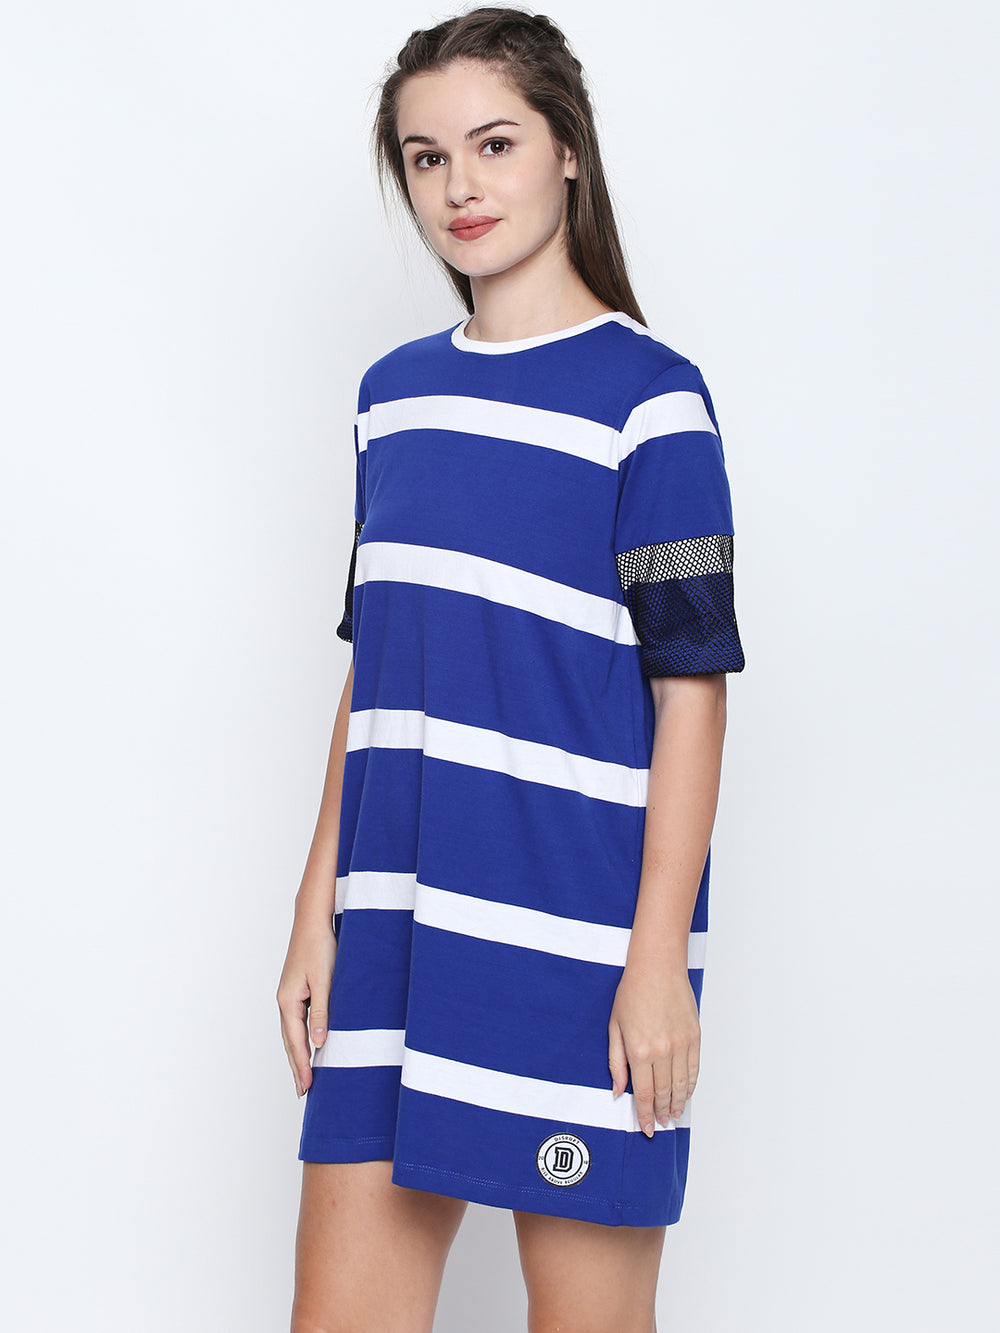 Blue N White Striped Cotton Half Sleeve Dress